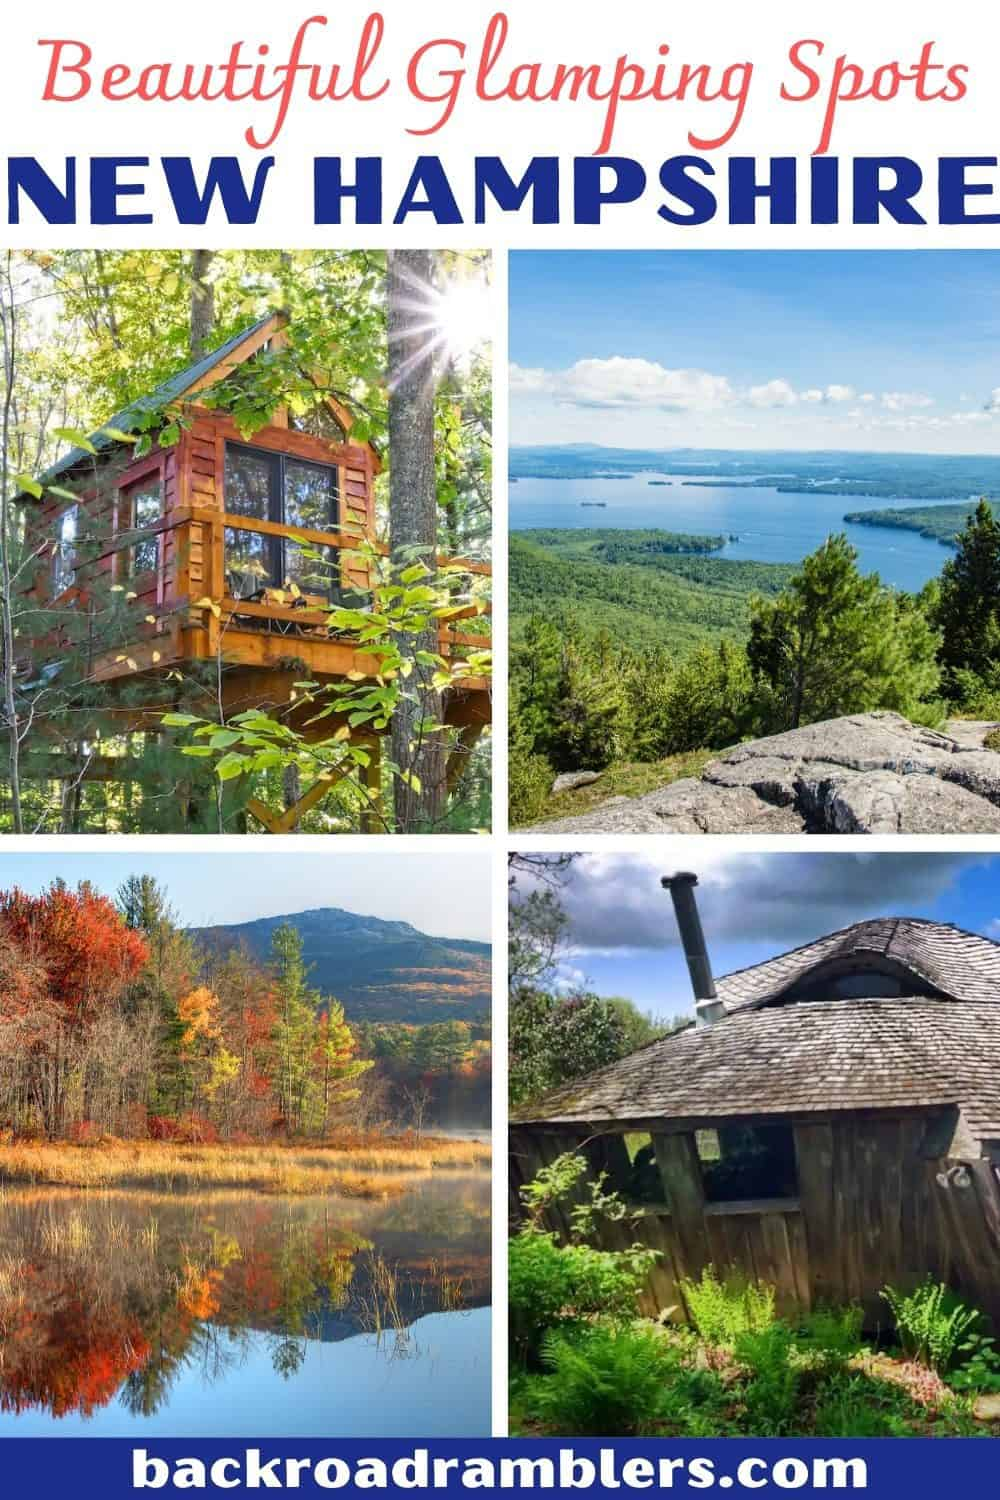 A collage of photos featuring New Hampshire glamping destinations